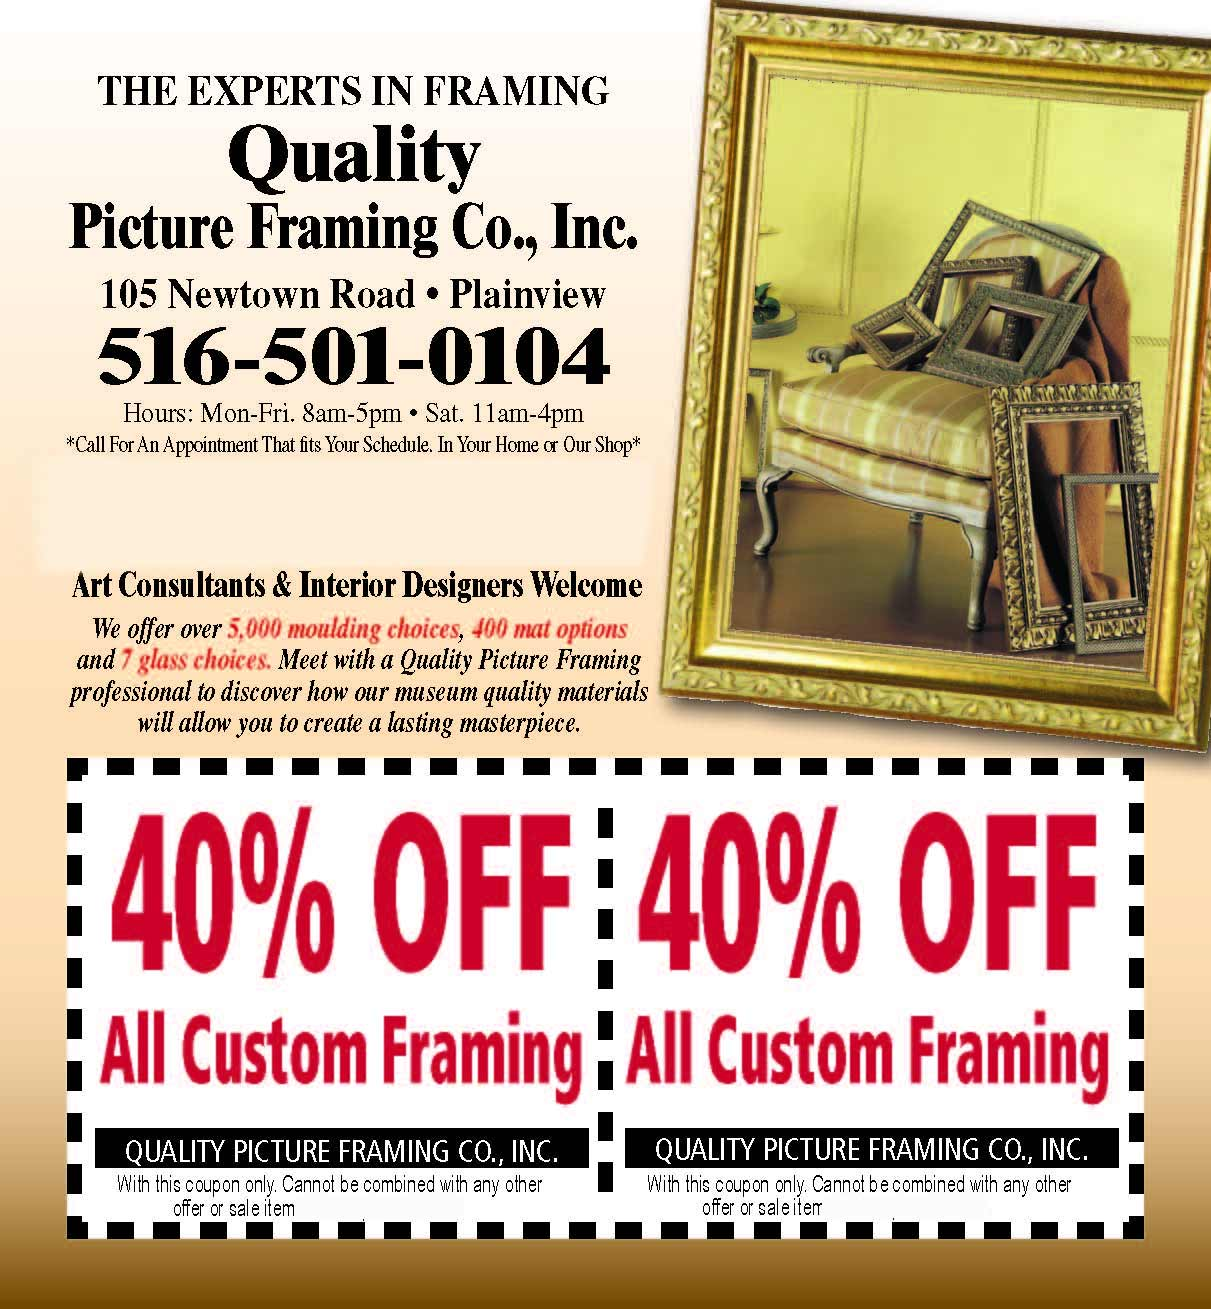 Picture Framing Supplies | Quality Picture Framing